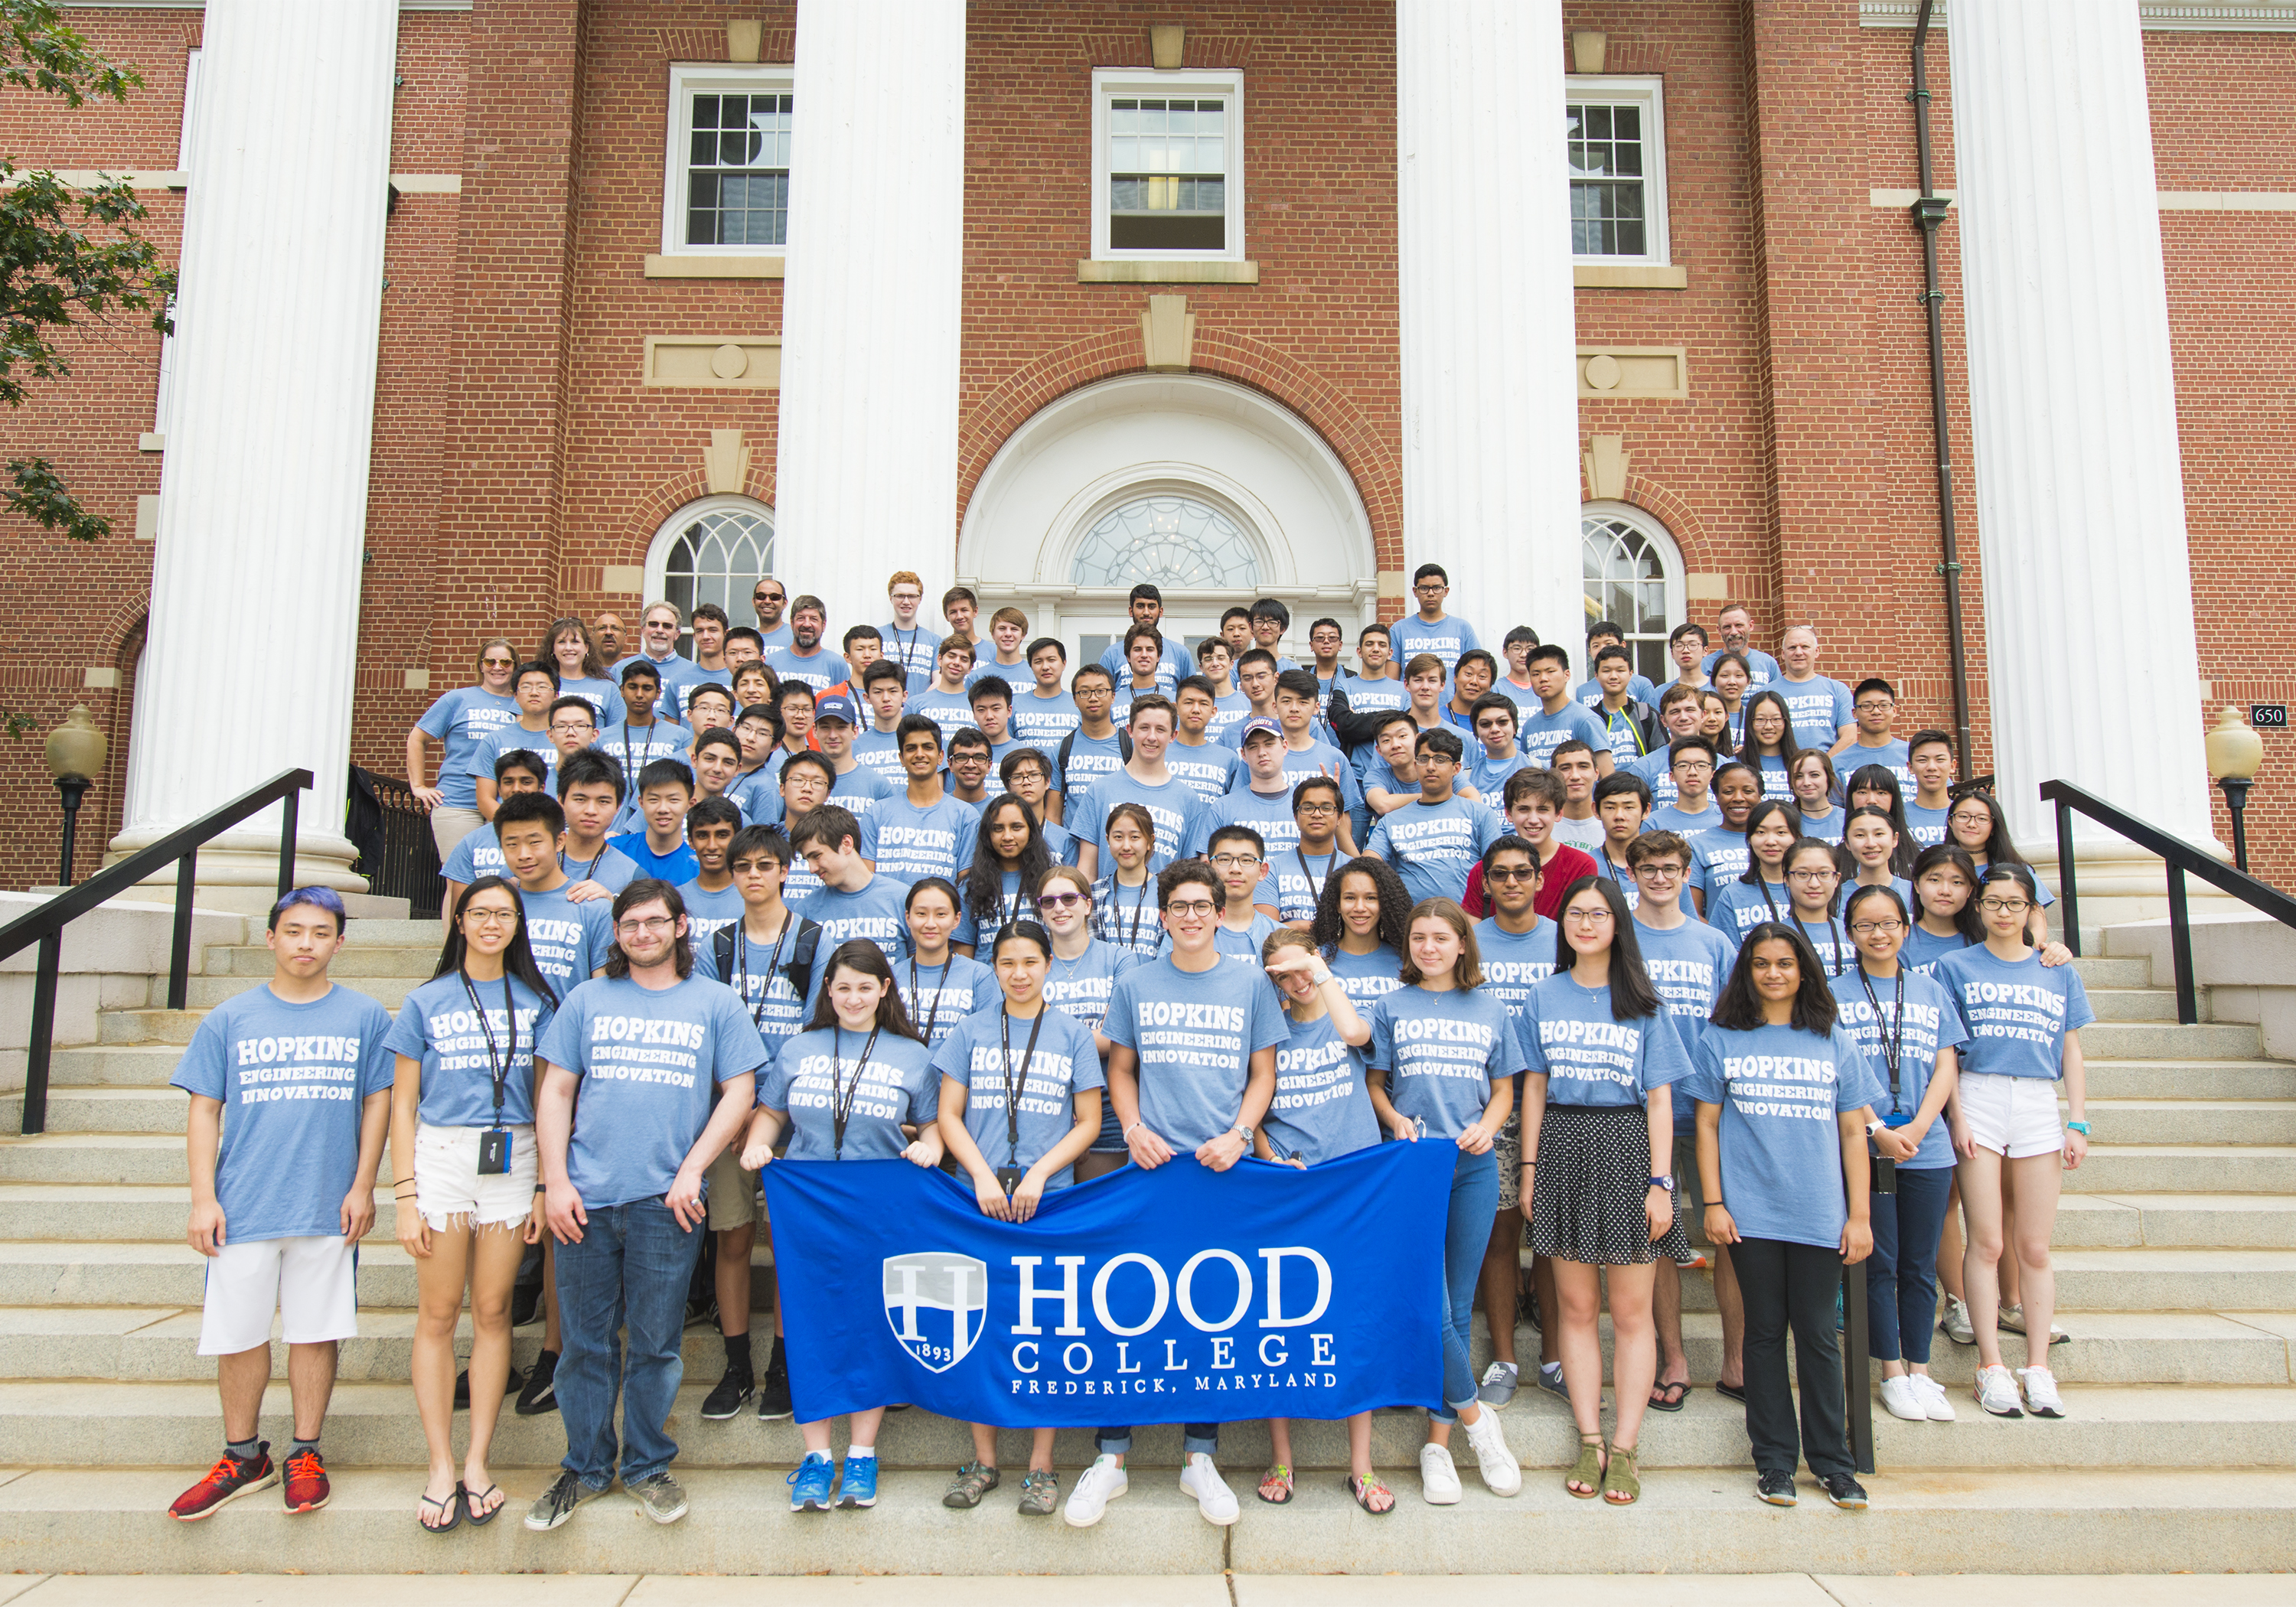 Hood College Frederick Md Johns Hopkins Engineering Innovation